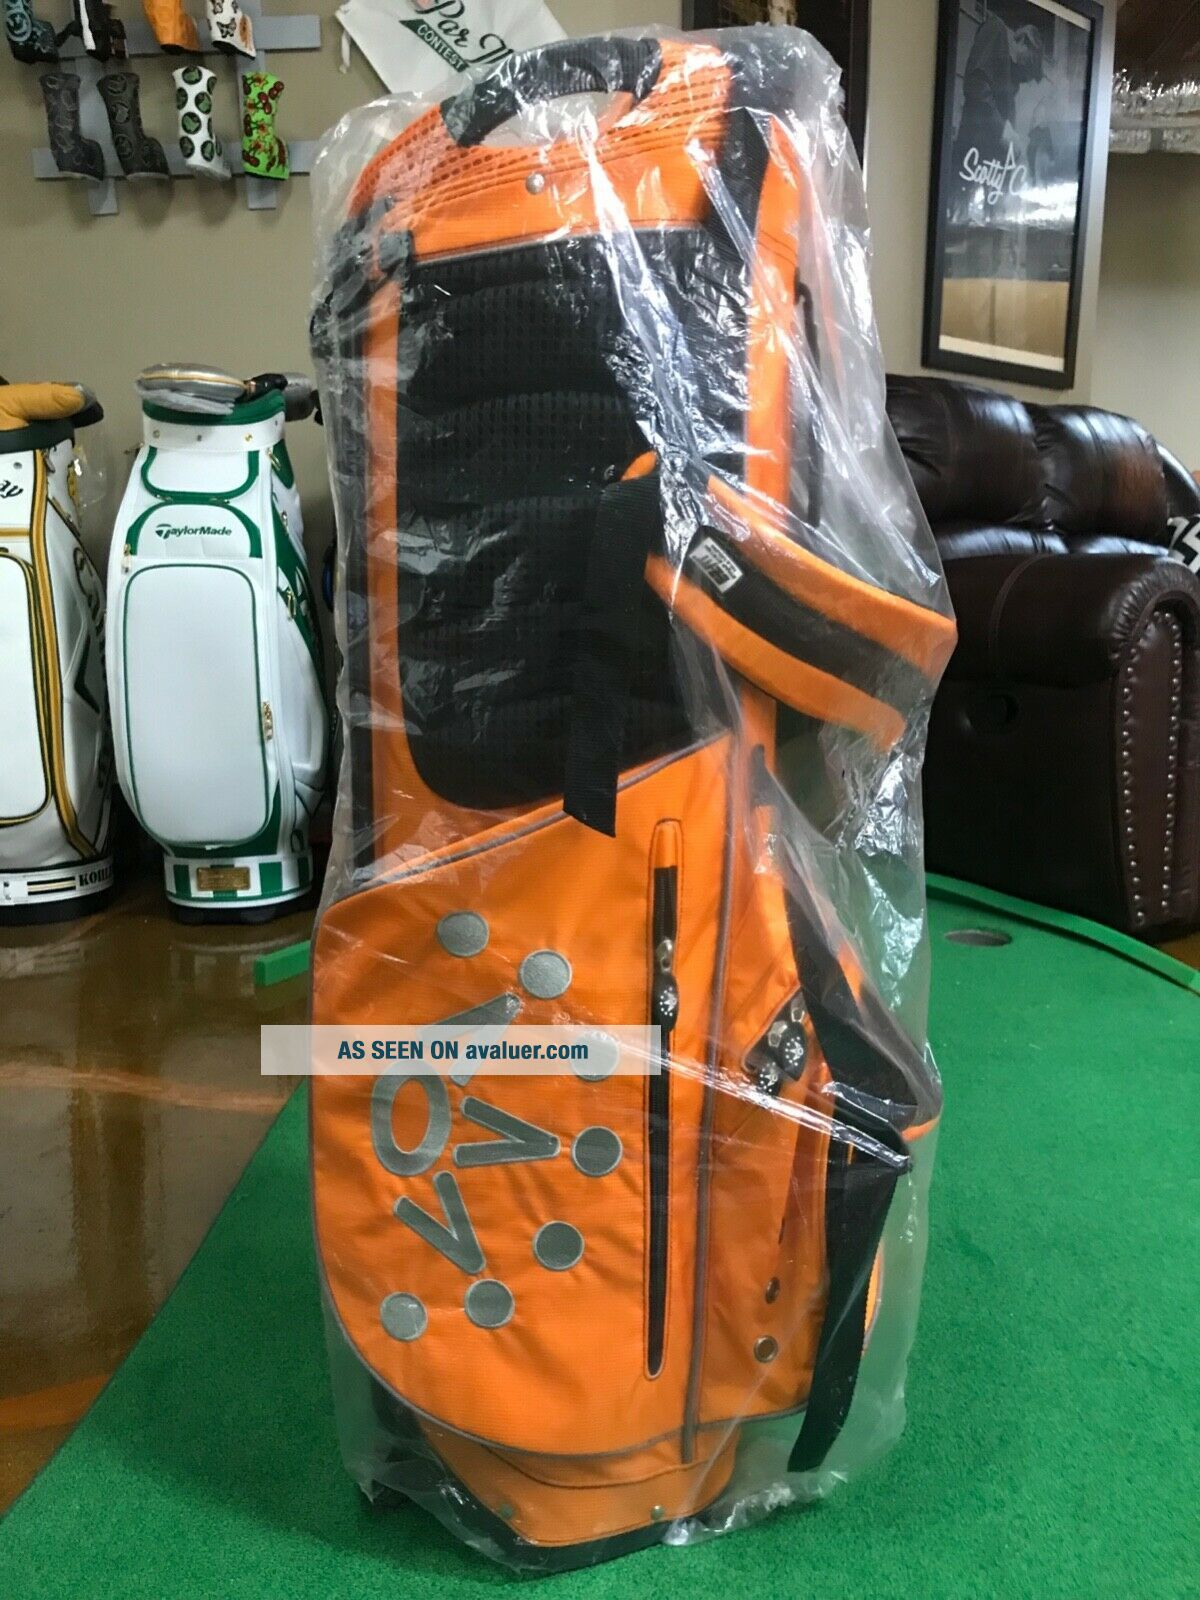 Scotty Cameron Rare Pin Flag Stand Bag Orange